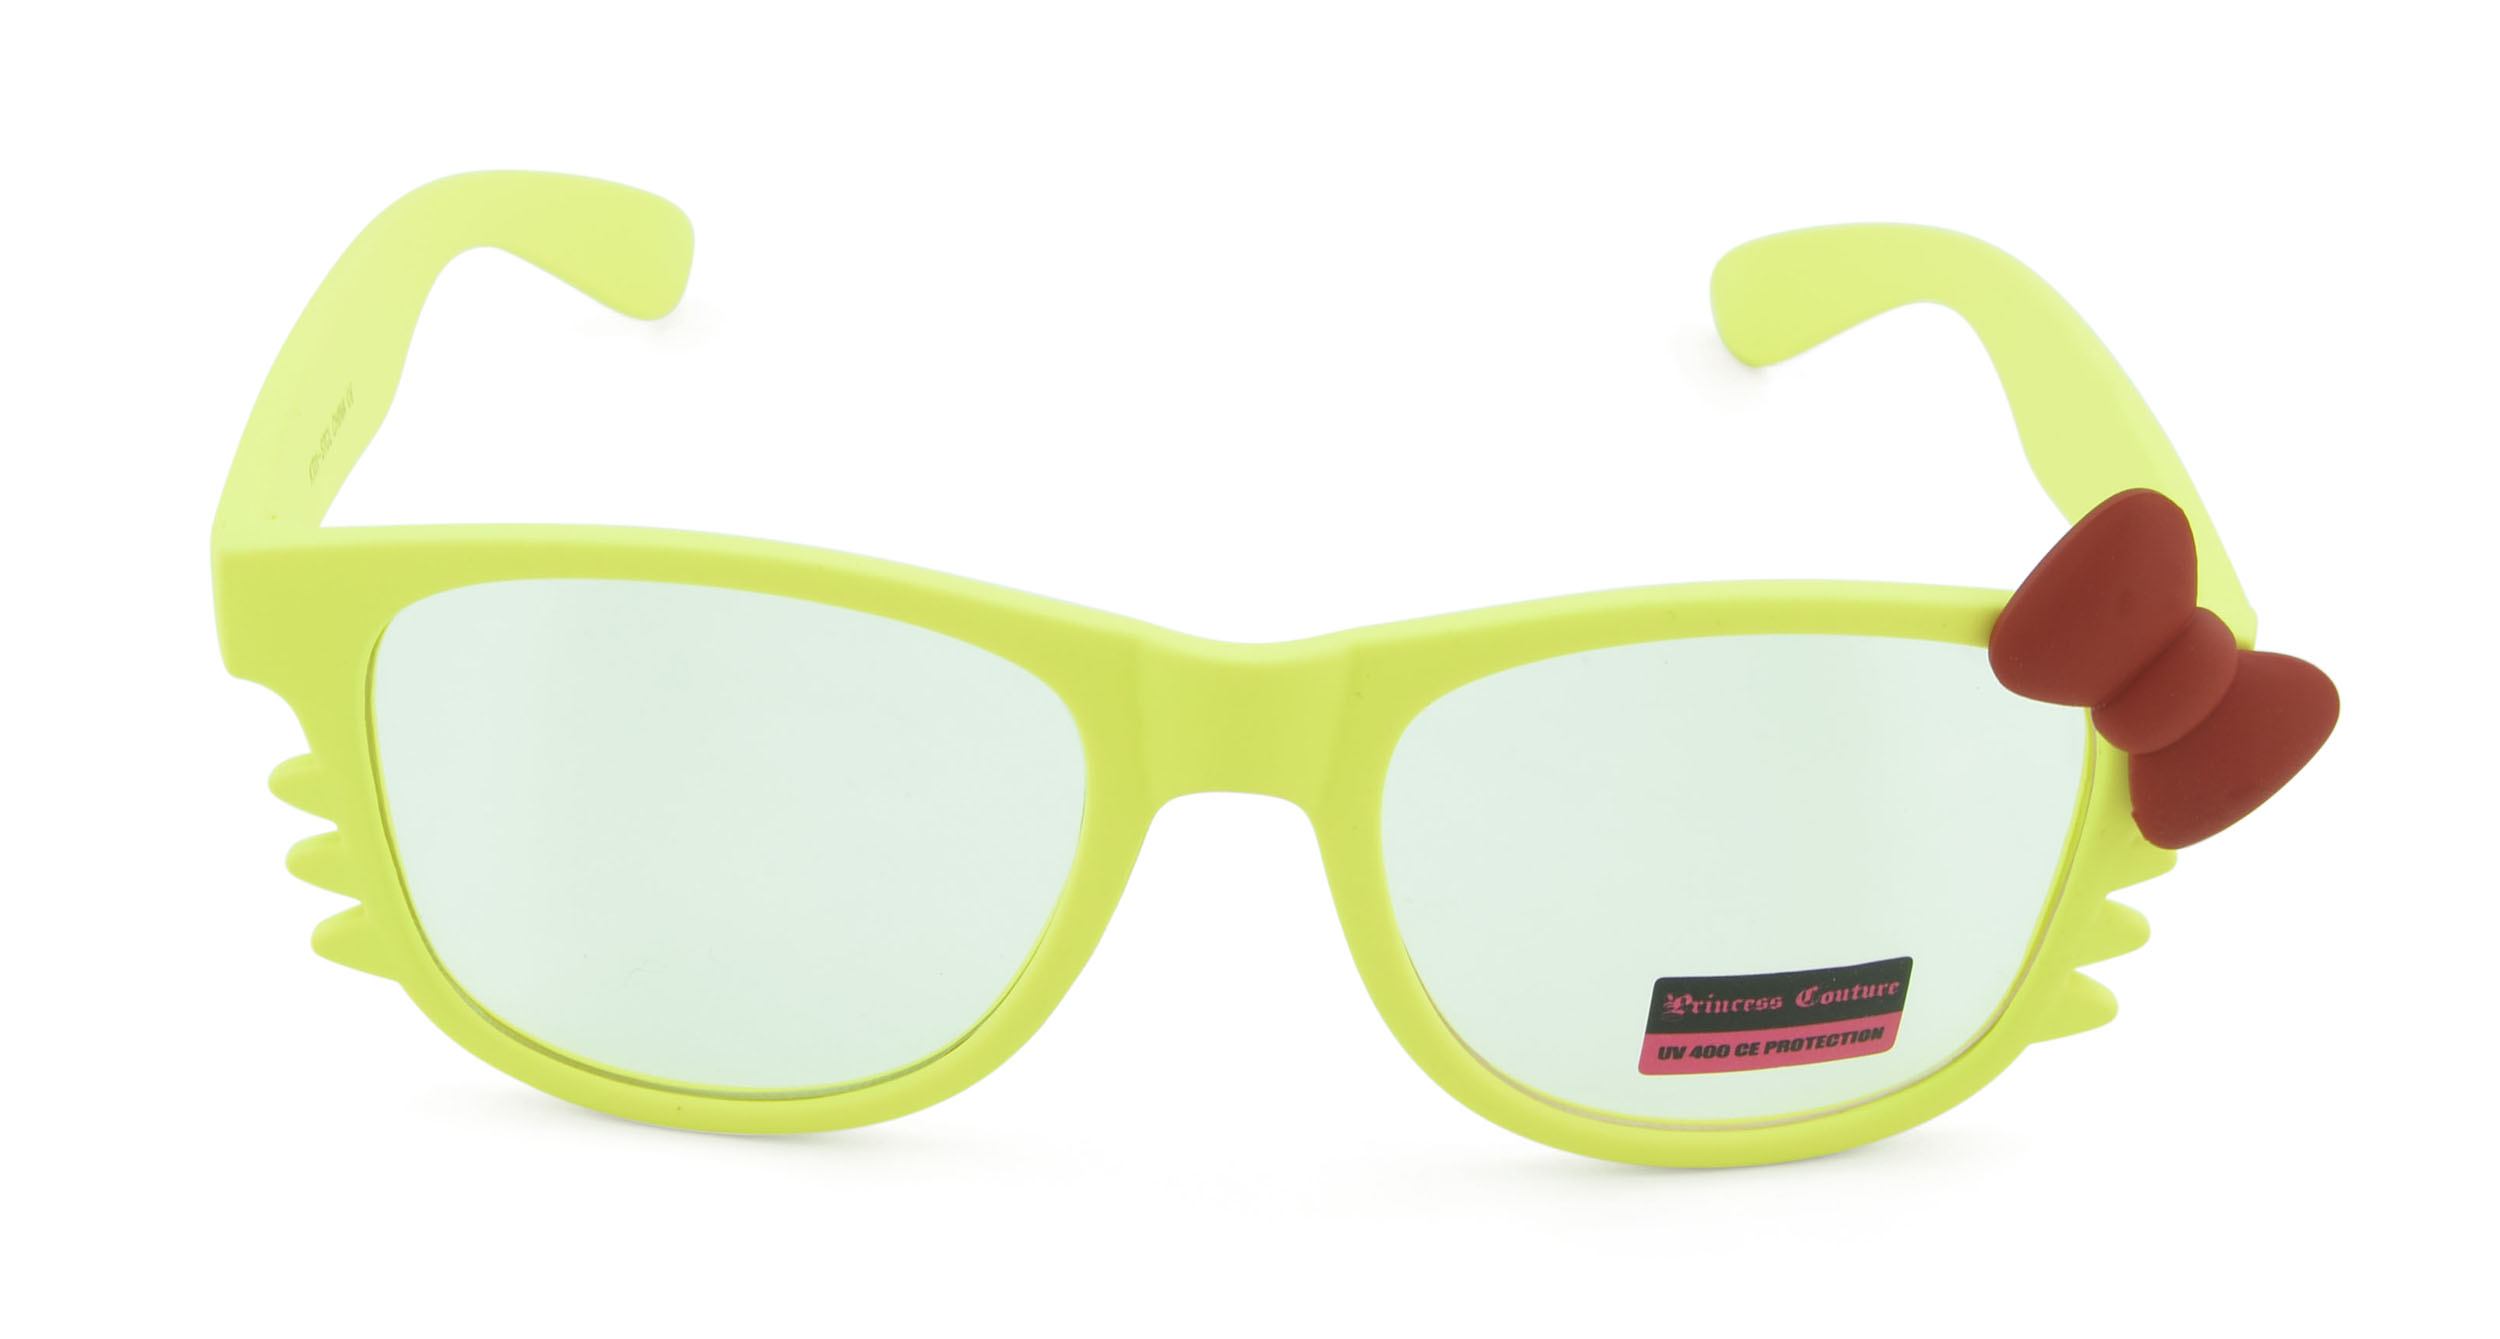 Belle Donne-Women's Kitty Style Sunglasses with Whisker or Bow Accent-Yellow